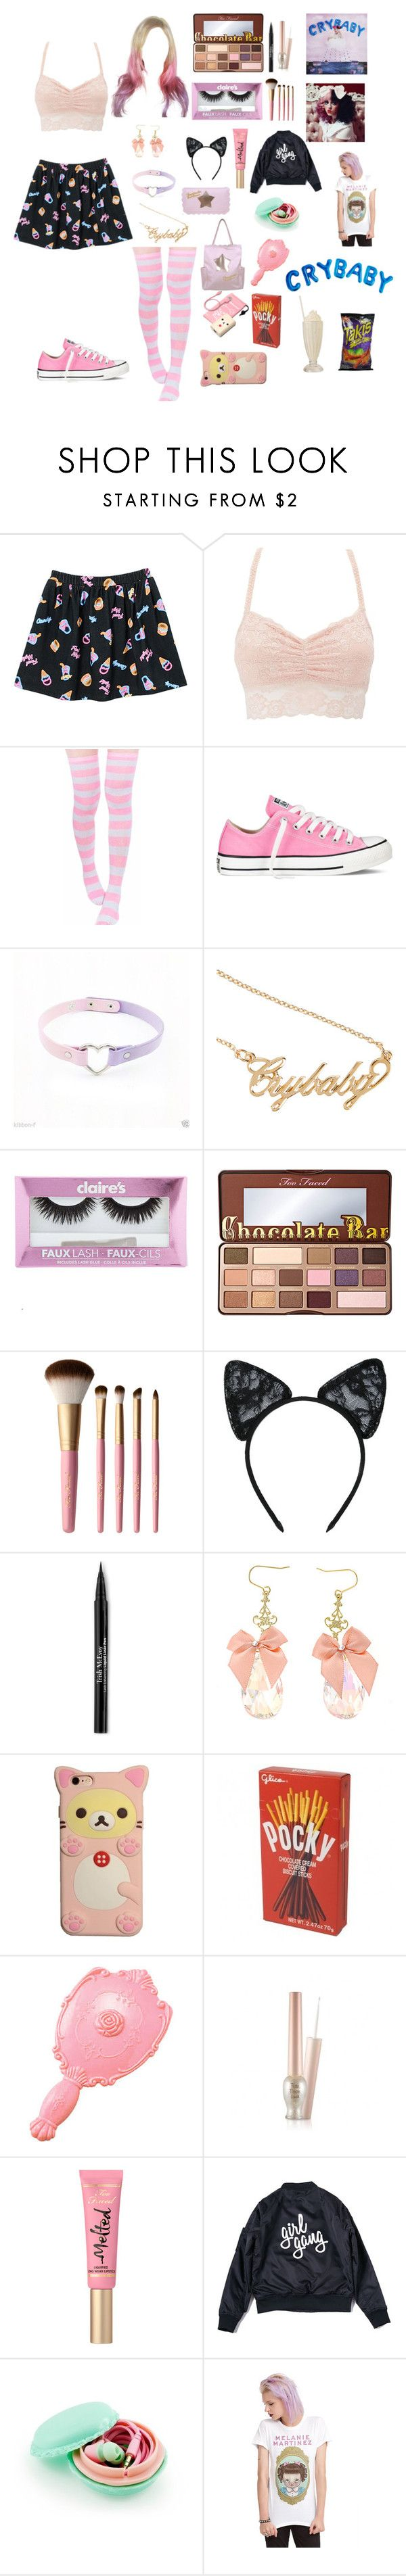 """i'm going to Melanie Martinez tour 2016"" by mewmewbunny ❤ liked on Polyvore featuring Charlotte Russe, Converse, claire's, Too Faced Cosmetics, Maison Close, Trish McEvoy and Samsung"